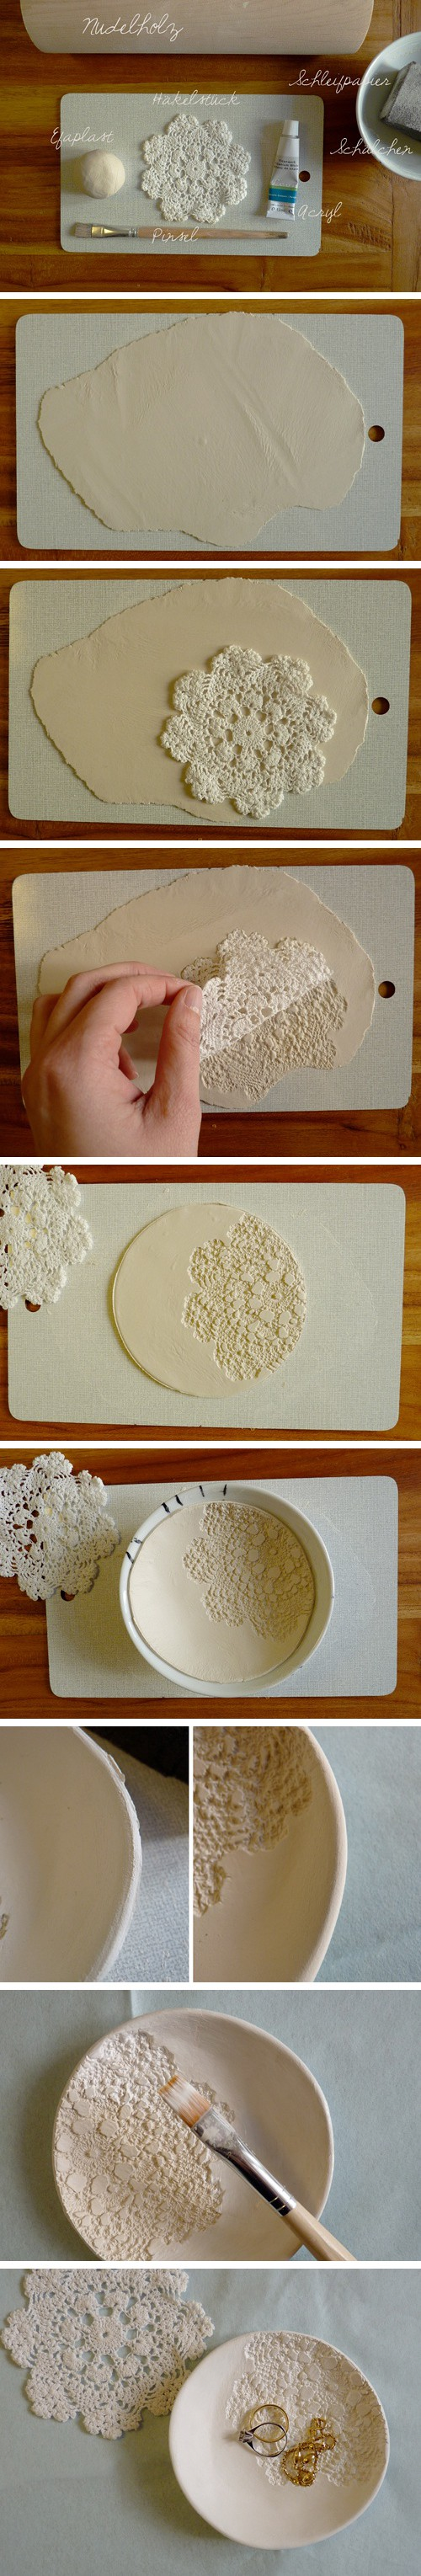 DIY decorative bowl out of air-drying clay